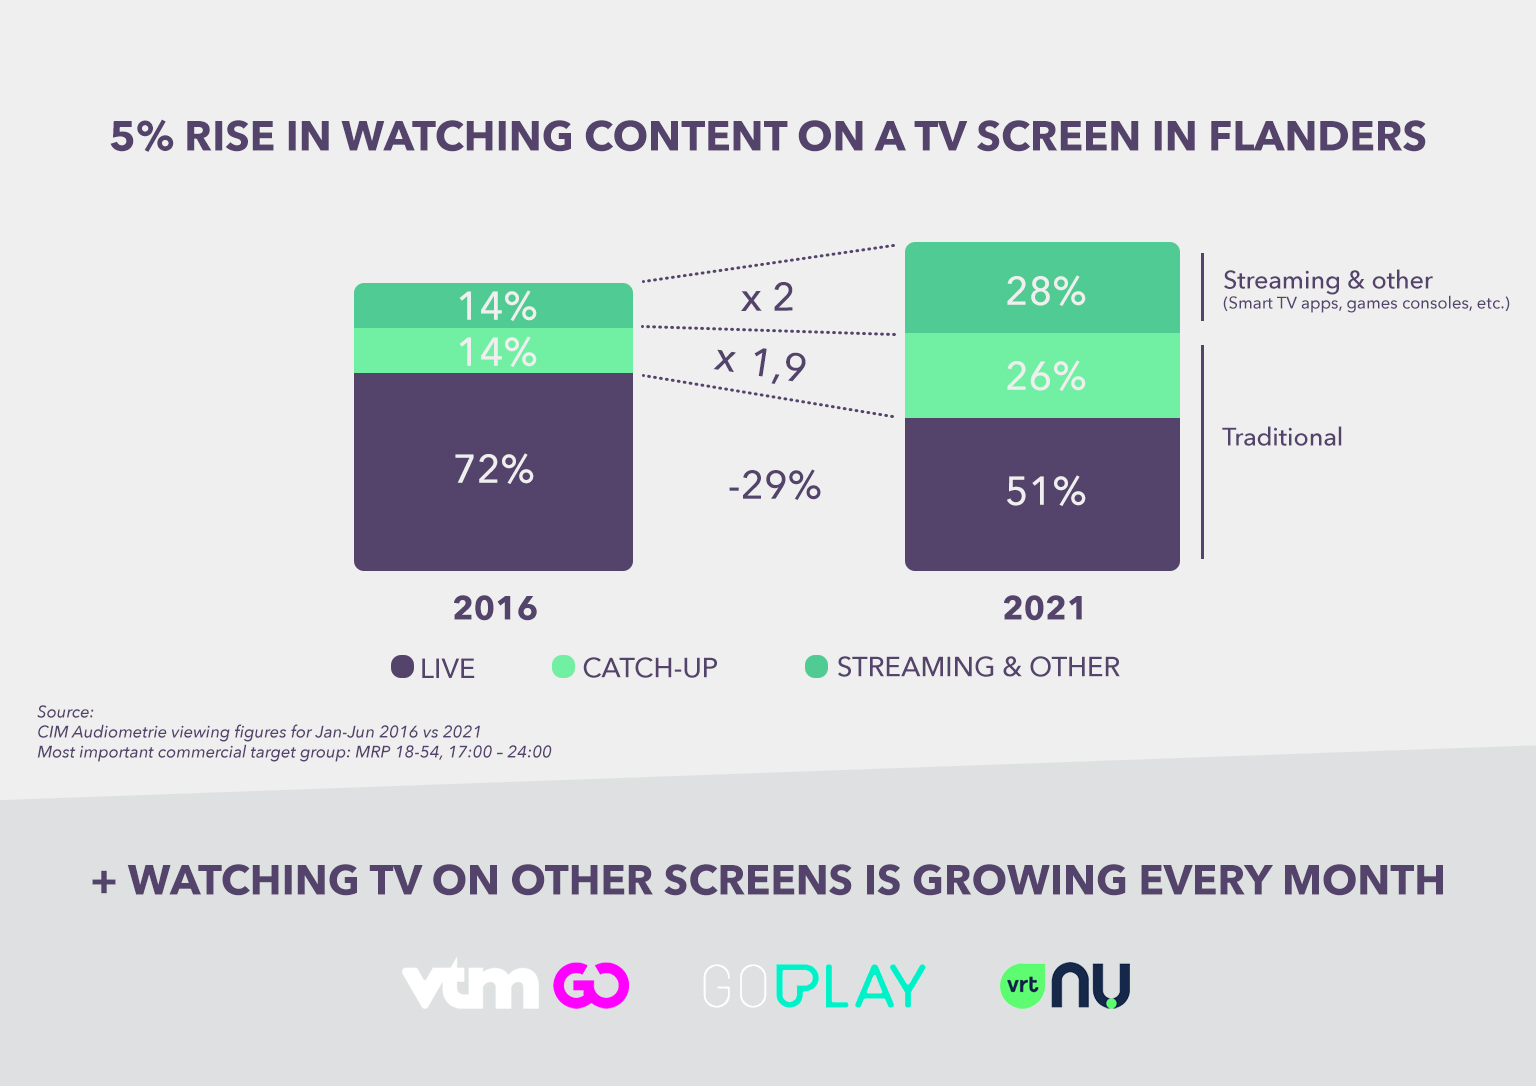 5% Rise In Watching Content On A TV Screen In Flanders